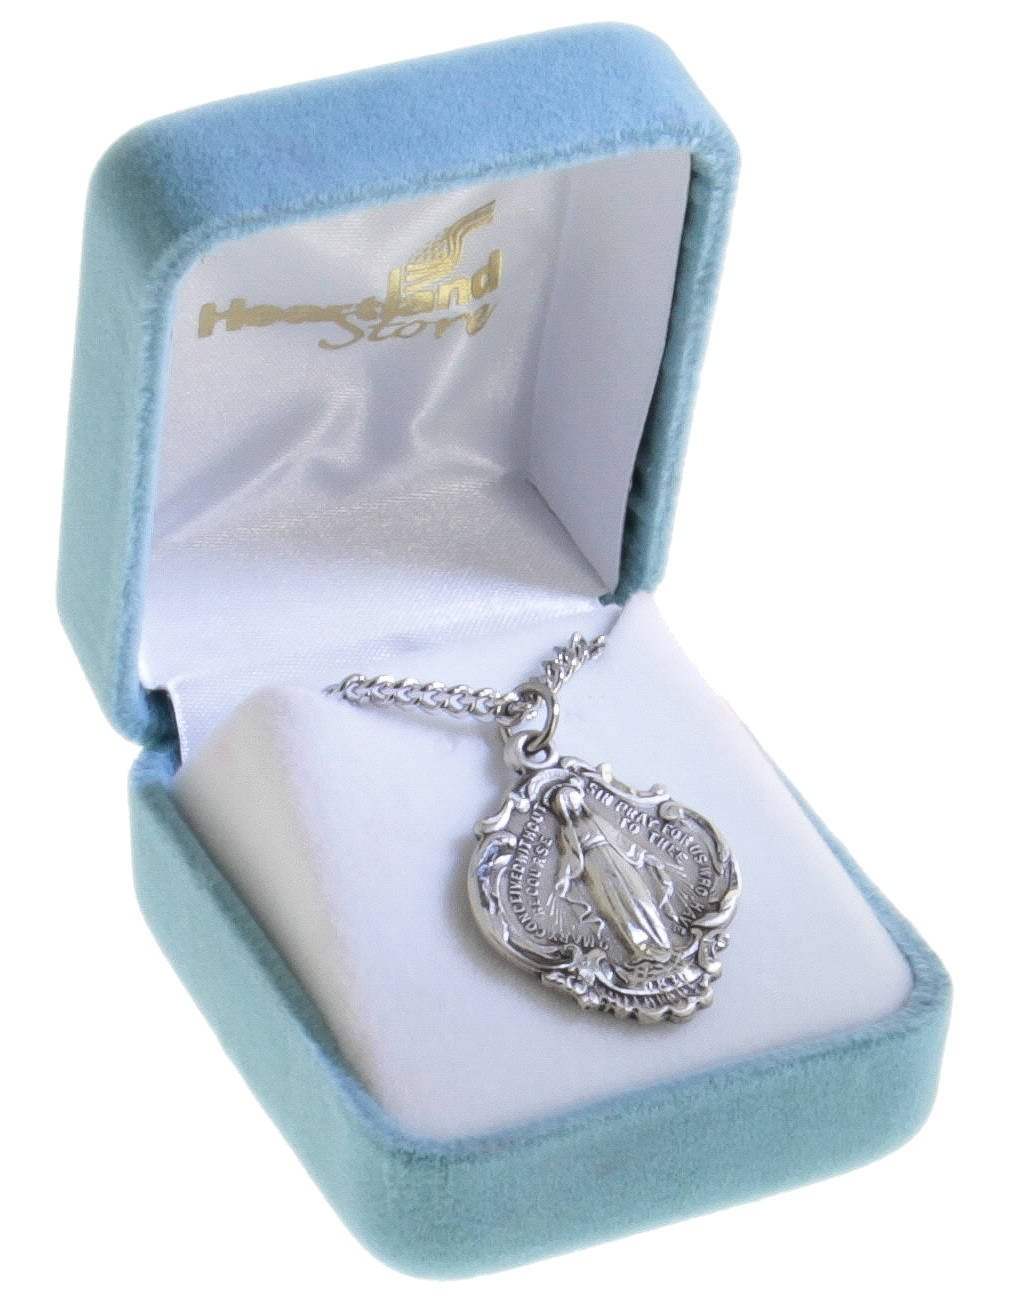 Hail Mary Prayer Sterling Silver Pendant + 24 Inch Sterling Silver Chain with Clasp by Heartland Store (Image #2)